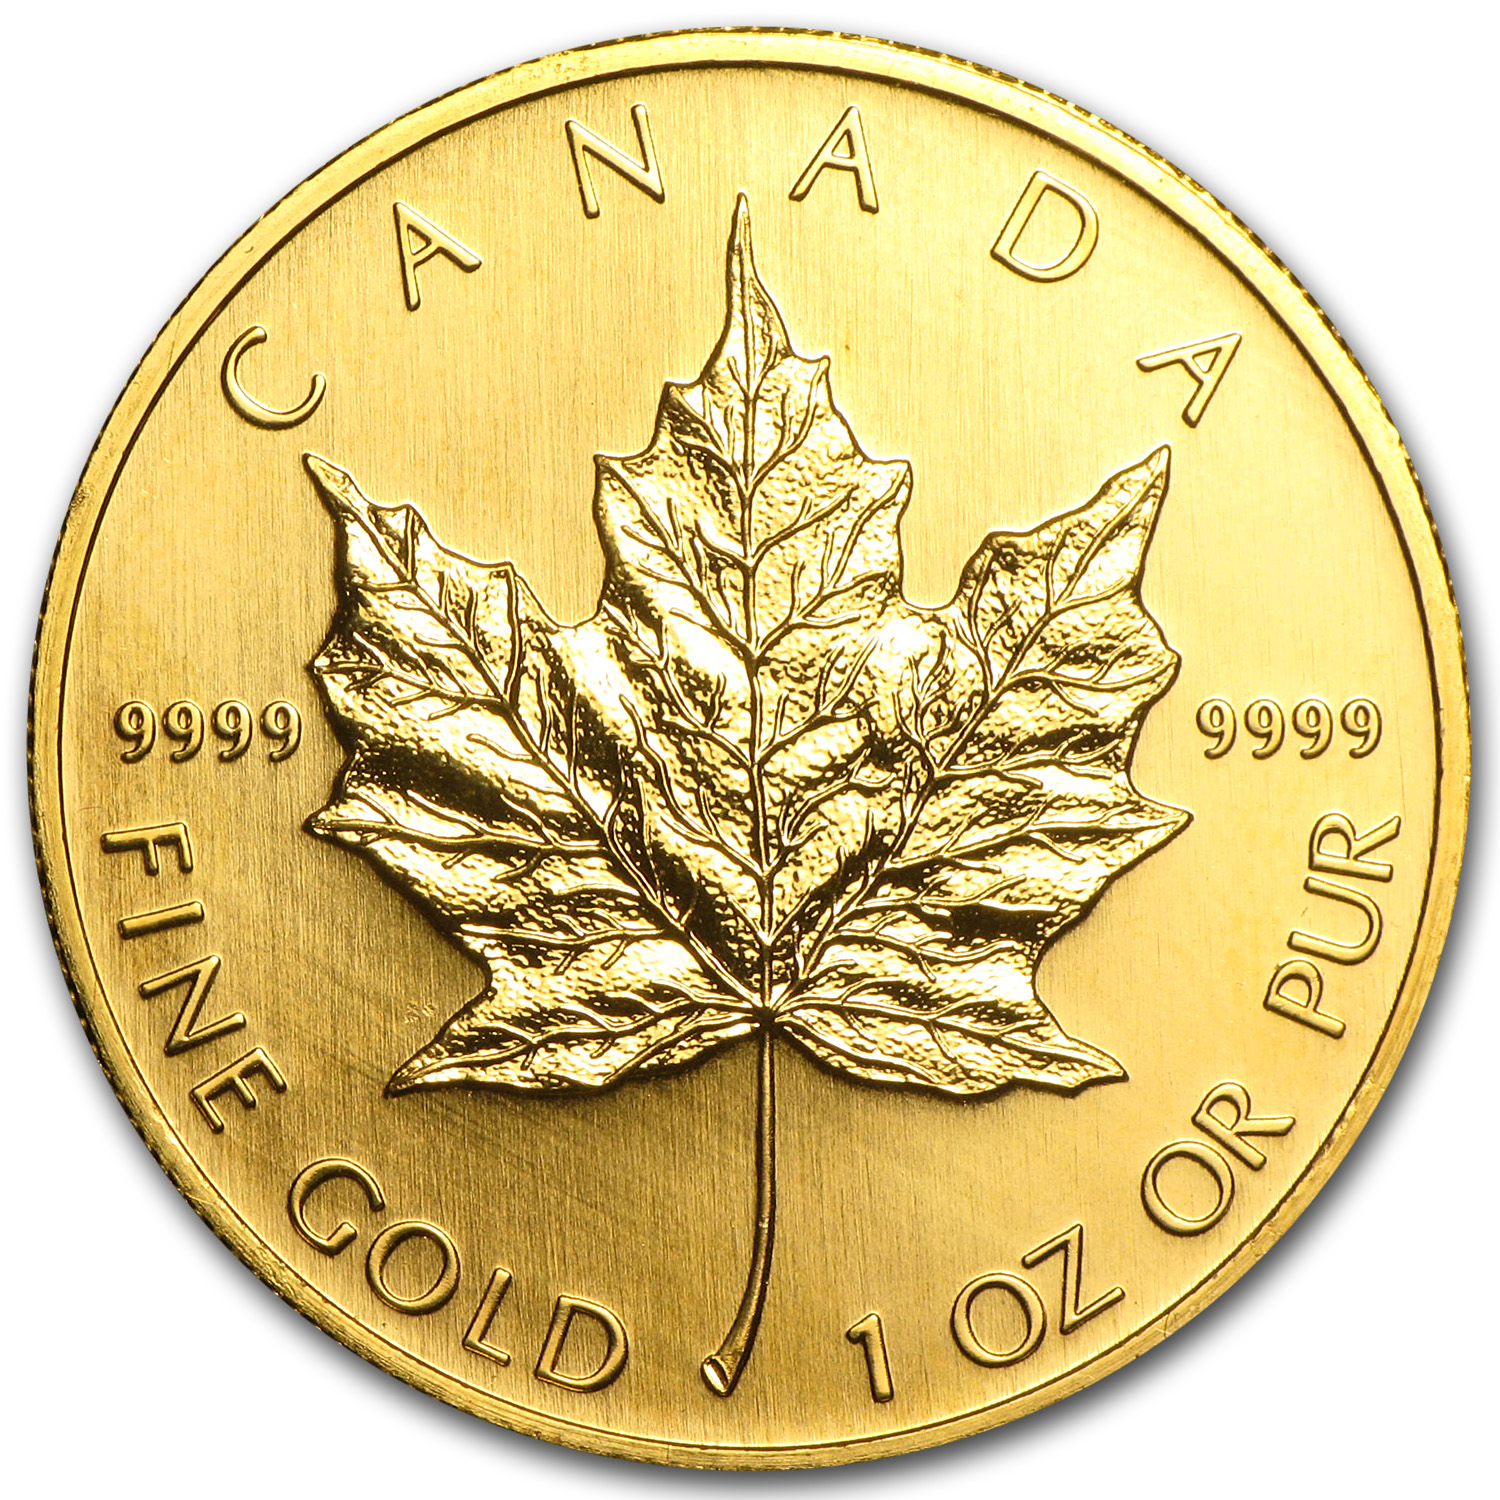 2004 Canada 1 oz Gold Maple Leaf BU